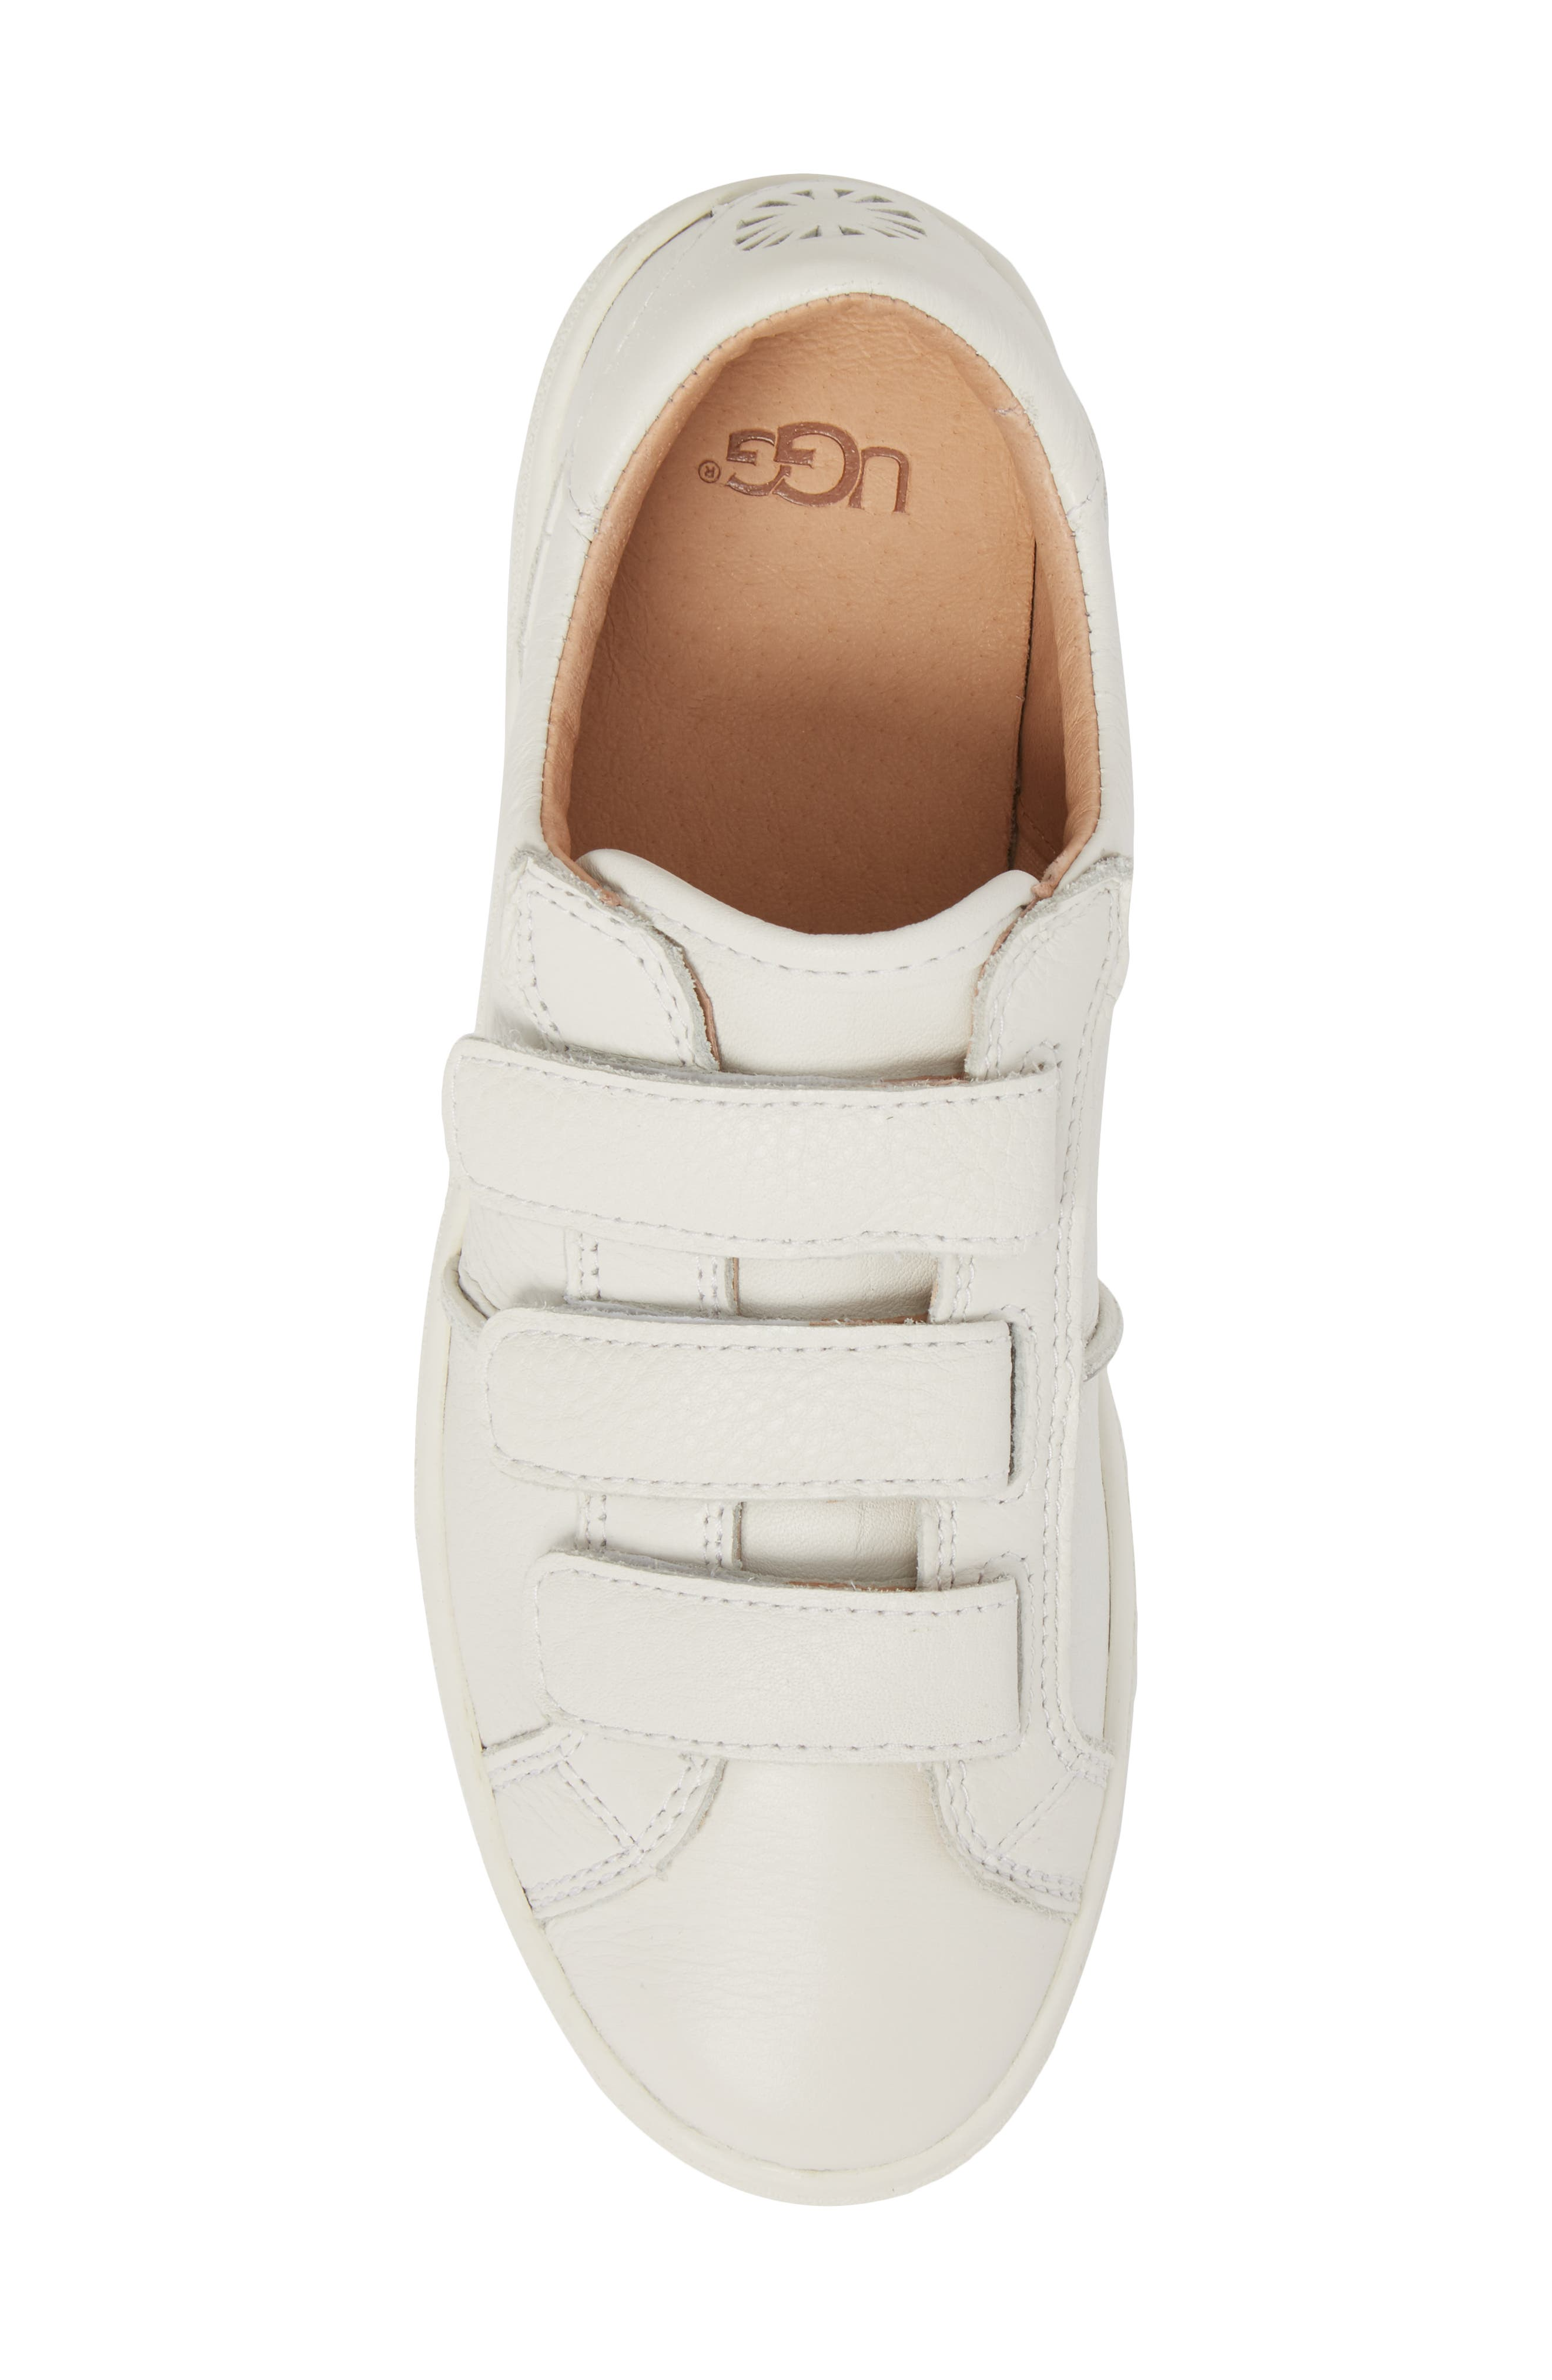 Alix Sneaker,                             Alternate thumbnail 5, color,                             White Leather